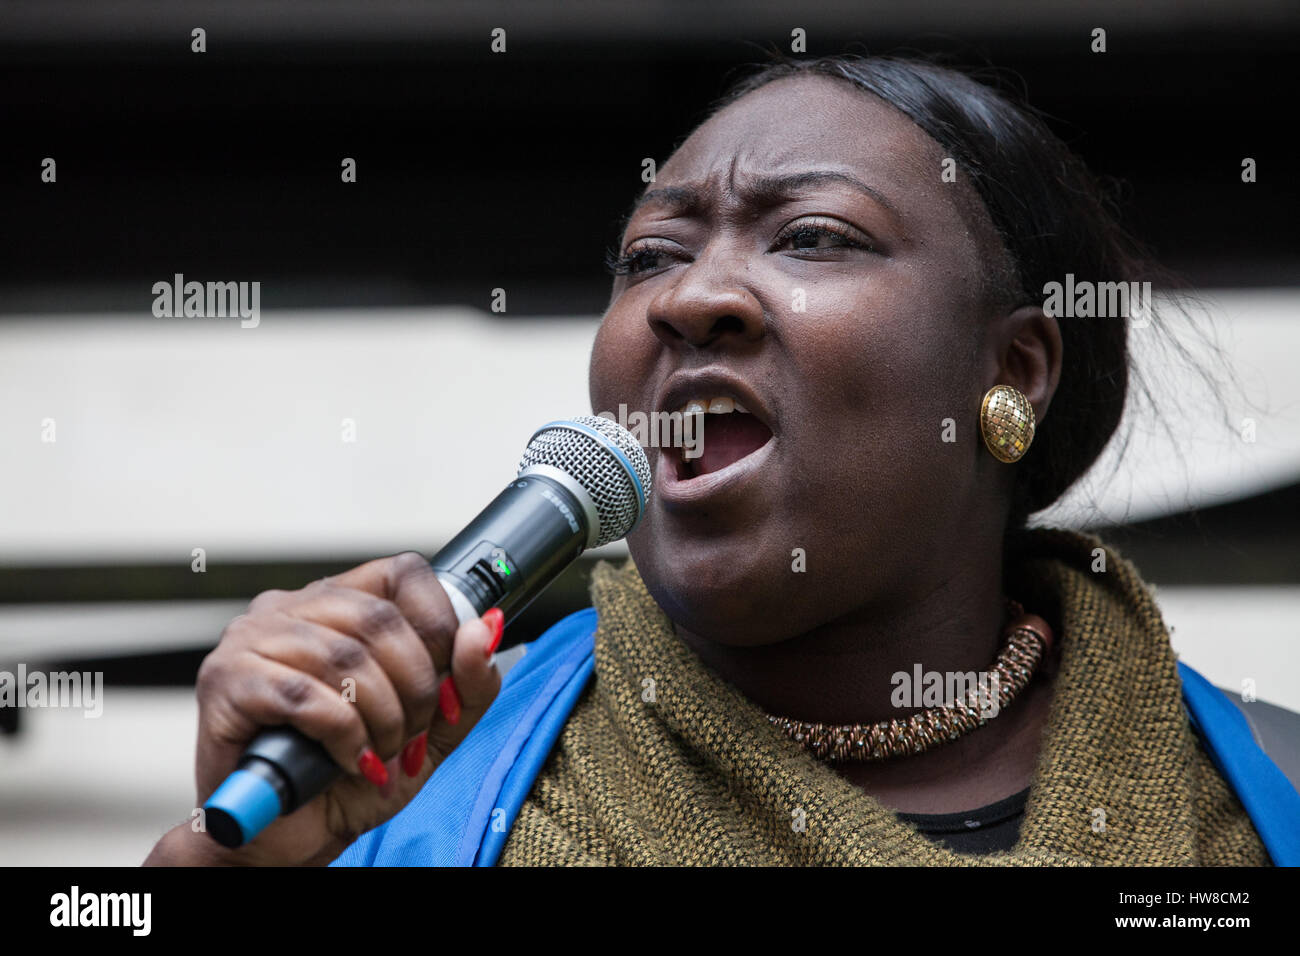 London, UK. 18th March, 2017. Phyll Opoku-Gyimah, co-founder, trustee and executive director of UK Black Pride, Stock Photo